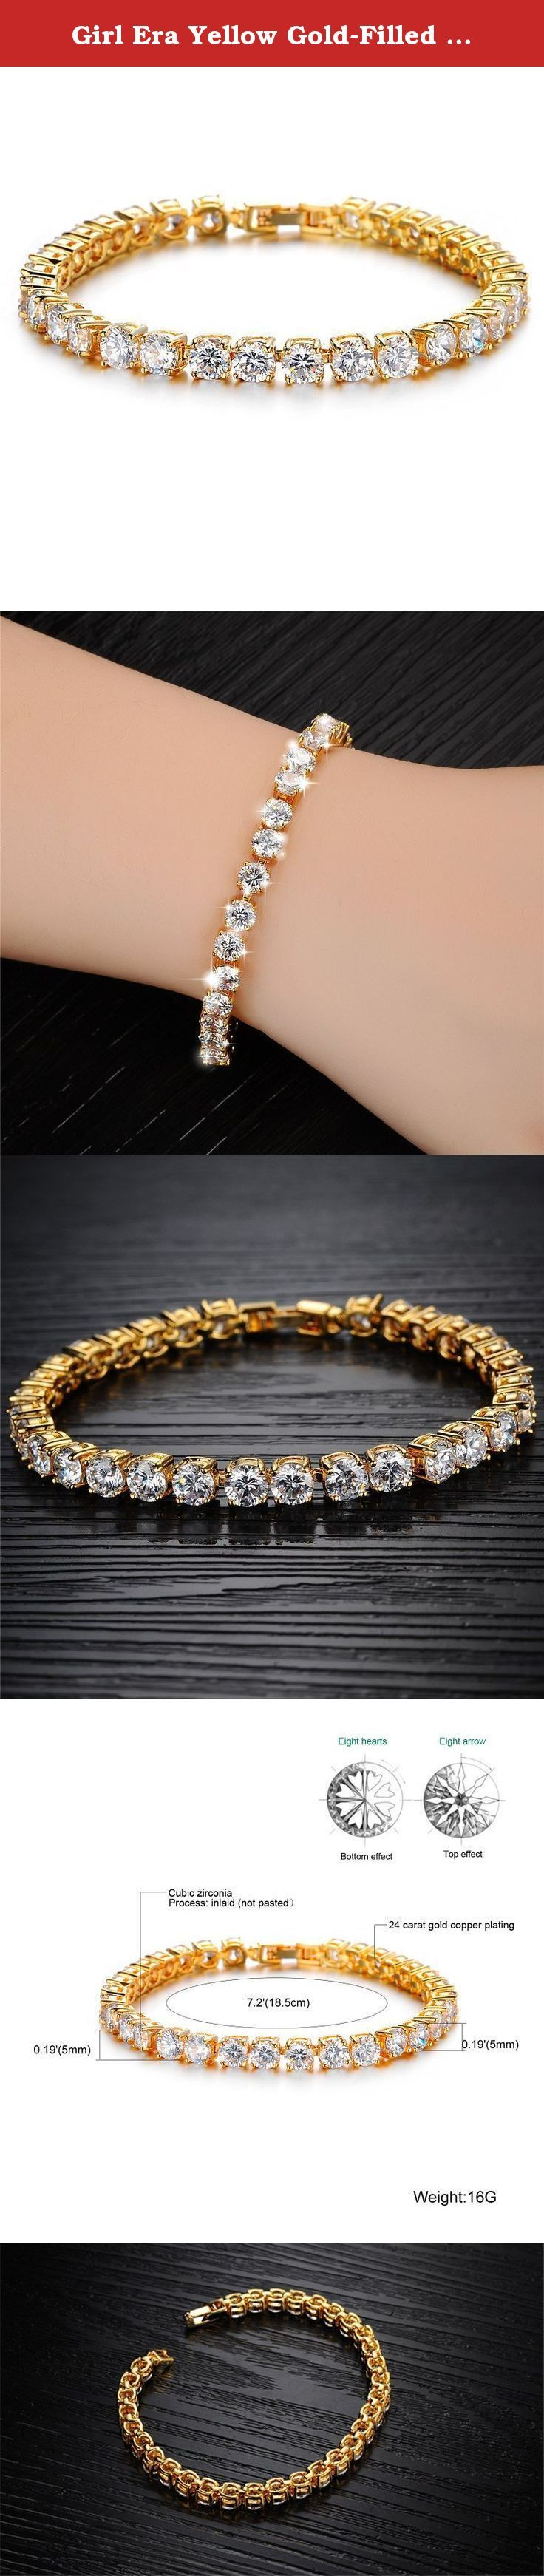 """Girl Era Yellow Gold-Filled Round Diamond-Cut Cubic Zirconia Tennis Bracelet,7.2"""". Indulge yourself with glamorous fashion jewelry! Girl Era boasts of numerous elegant necklaces, pendants, earrings, bangles, bracelets, brooches in various designs to choose from. The surface of bracelet adopt delicate polishing technology and plated with 18K Gold,it's long colorfast than common electroplating.Silver color part dealing with sand blasting treatment,can resist from scratches effectively…"""